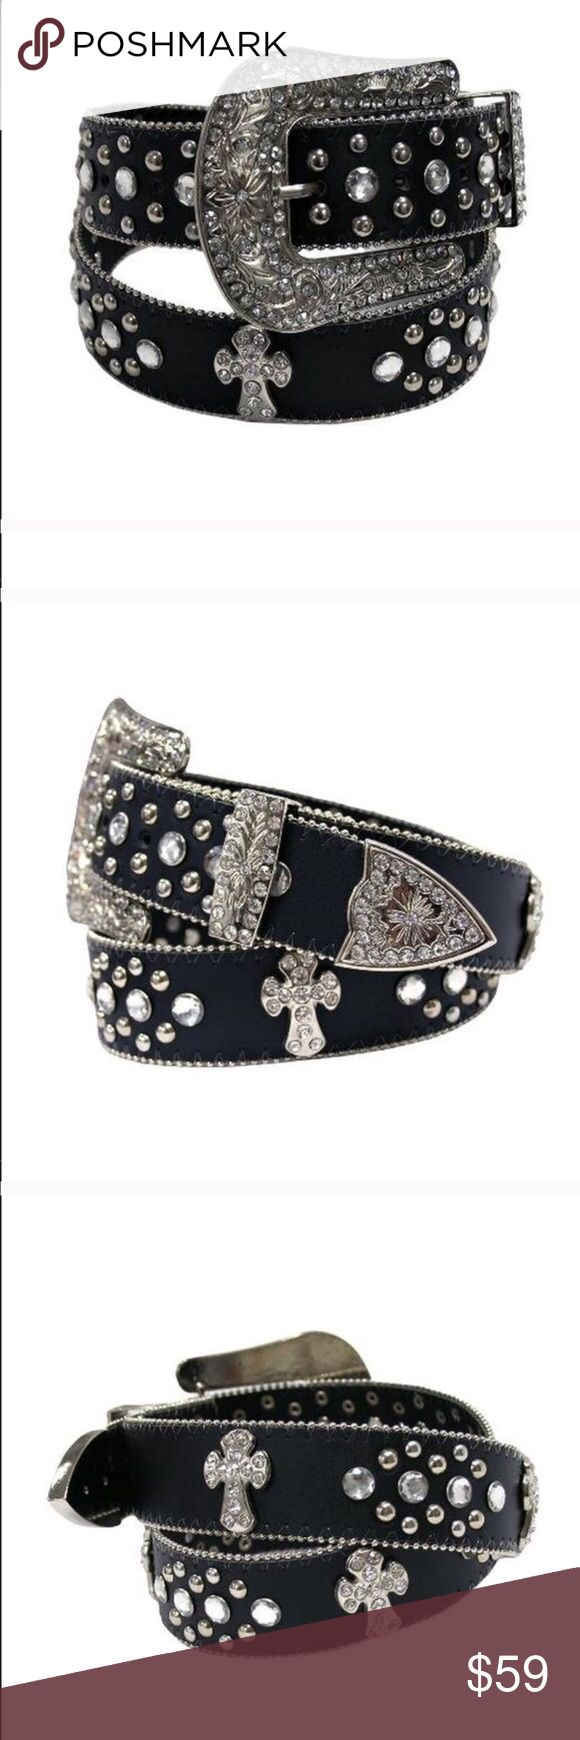 ➰ Black Western Bling Belt ➰ Please see pic 4 Denim, Boots, & Bling Accessories Belts